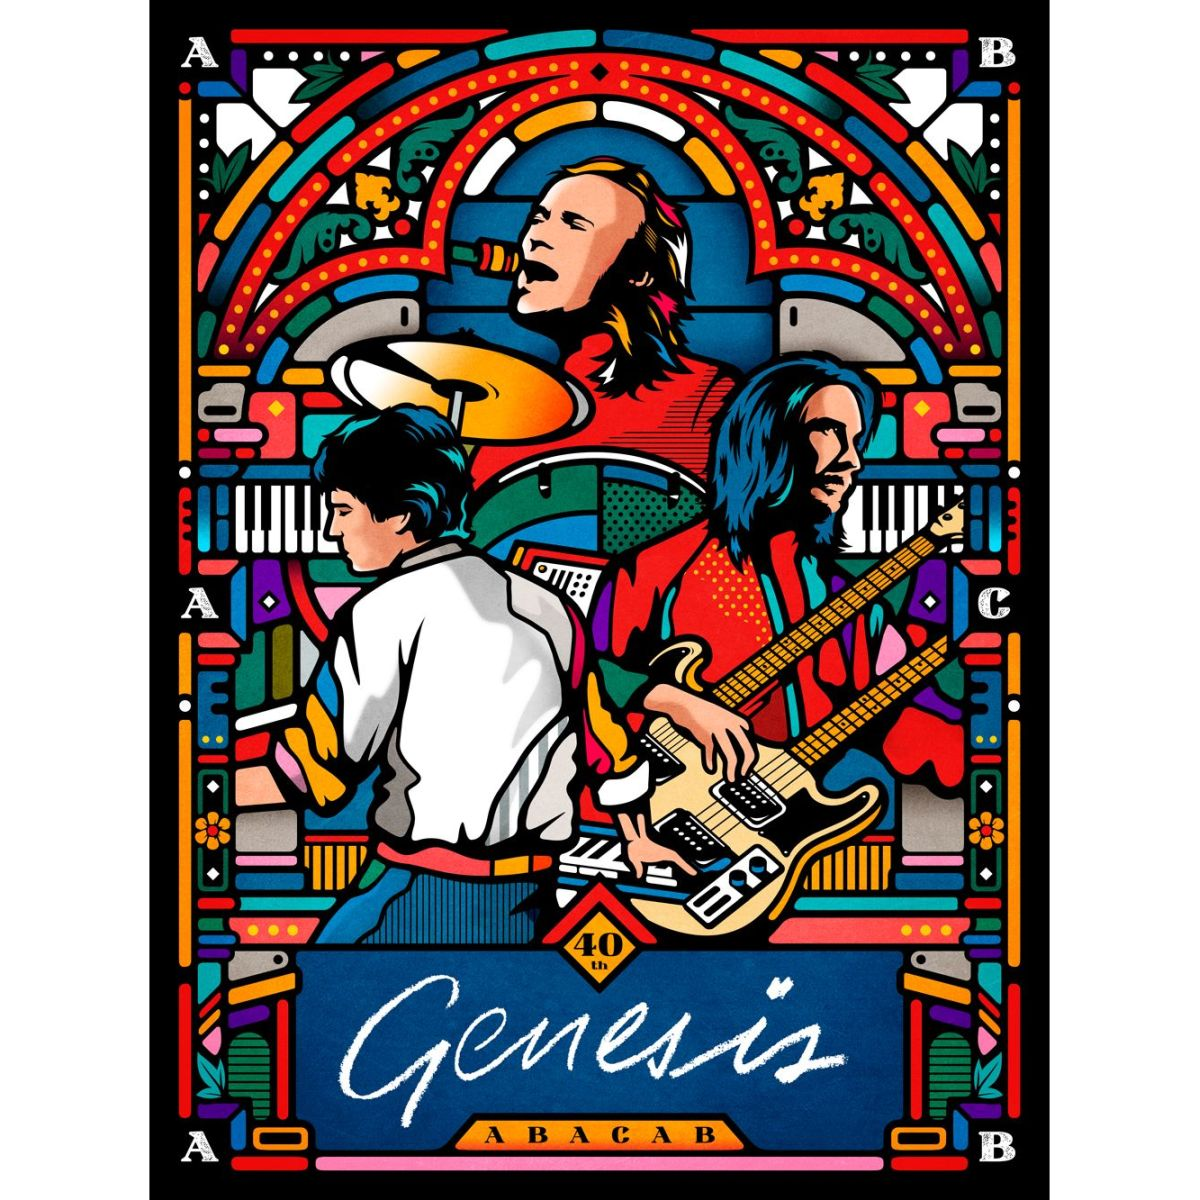 Genesis X Collectionzz Abacab 40th Anniversary Screenprint